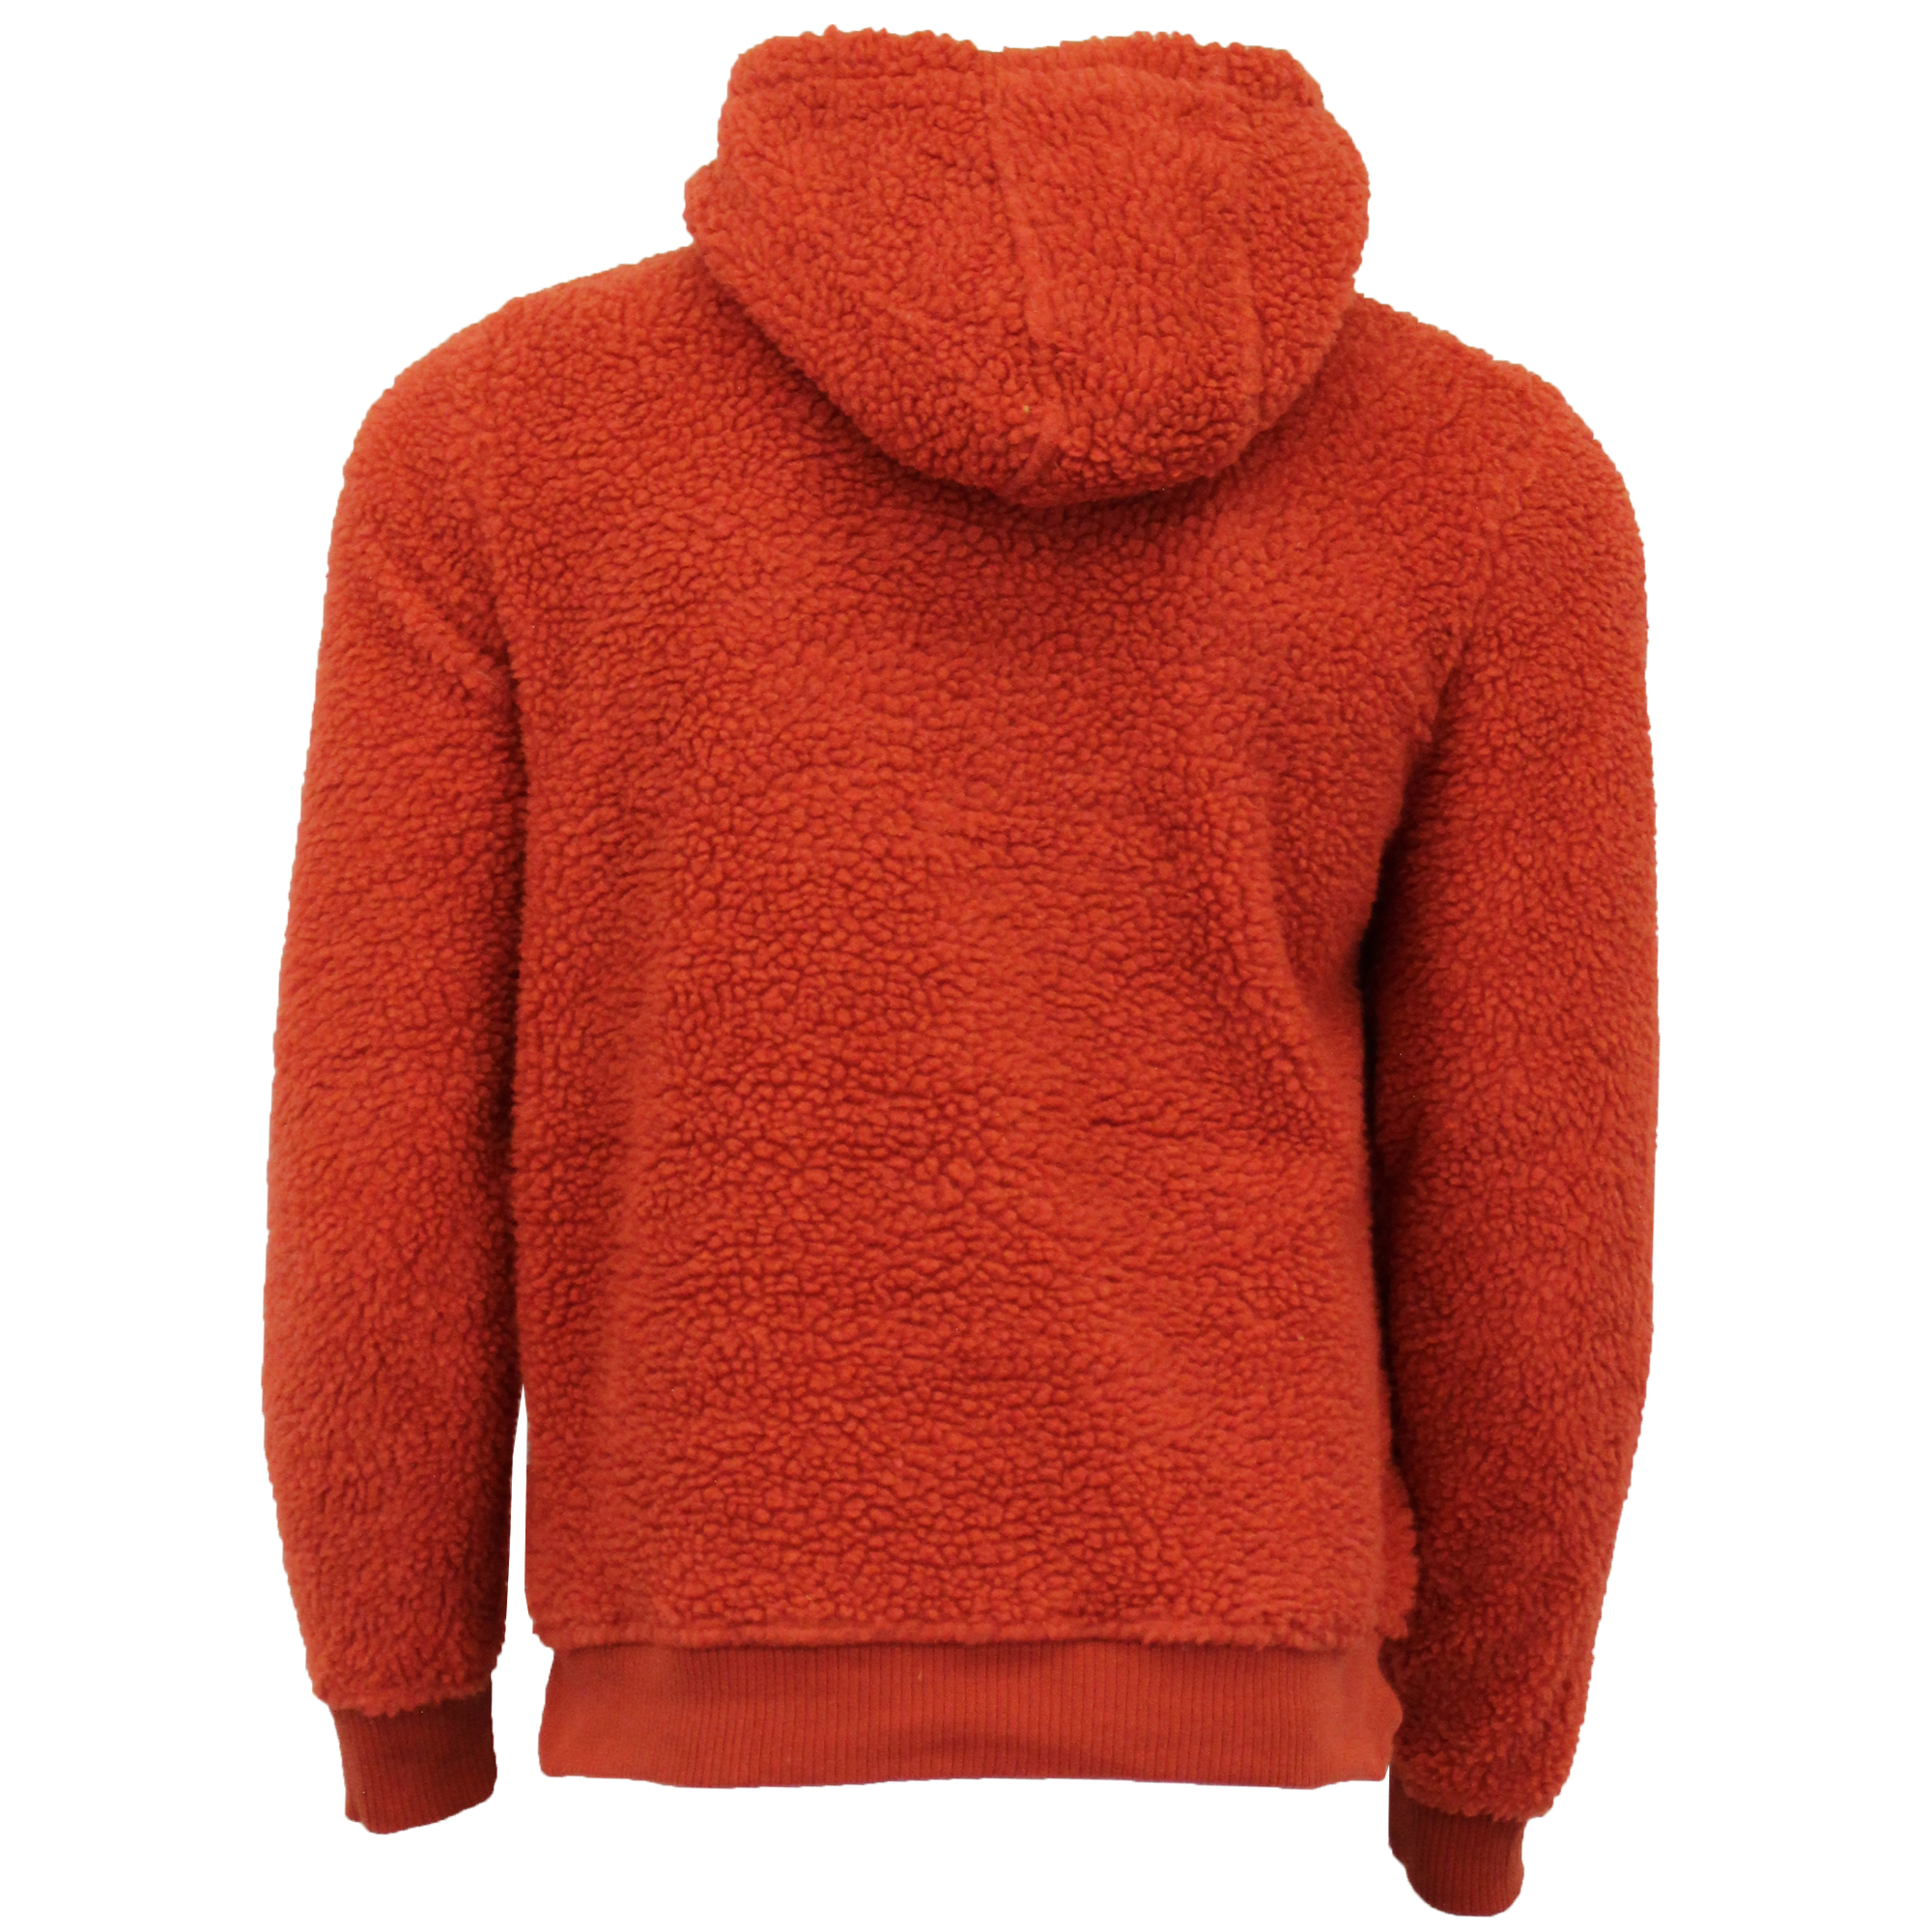 Mens-Sherpa-Fleece-Borg-Sweatshirt-Brave-Soul-Over-The-Head-GROMIT-Hooded-Top thumbnail 16